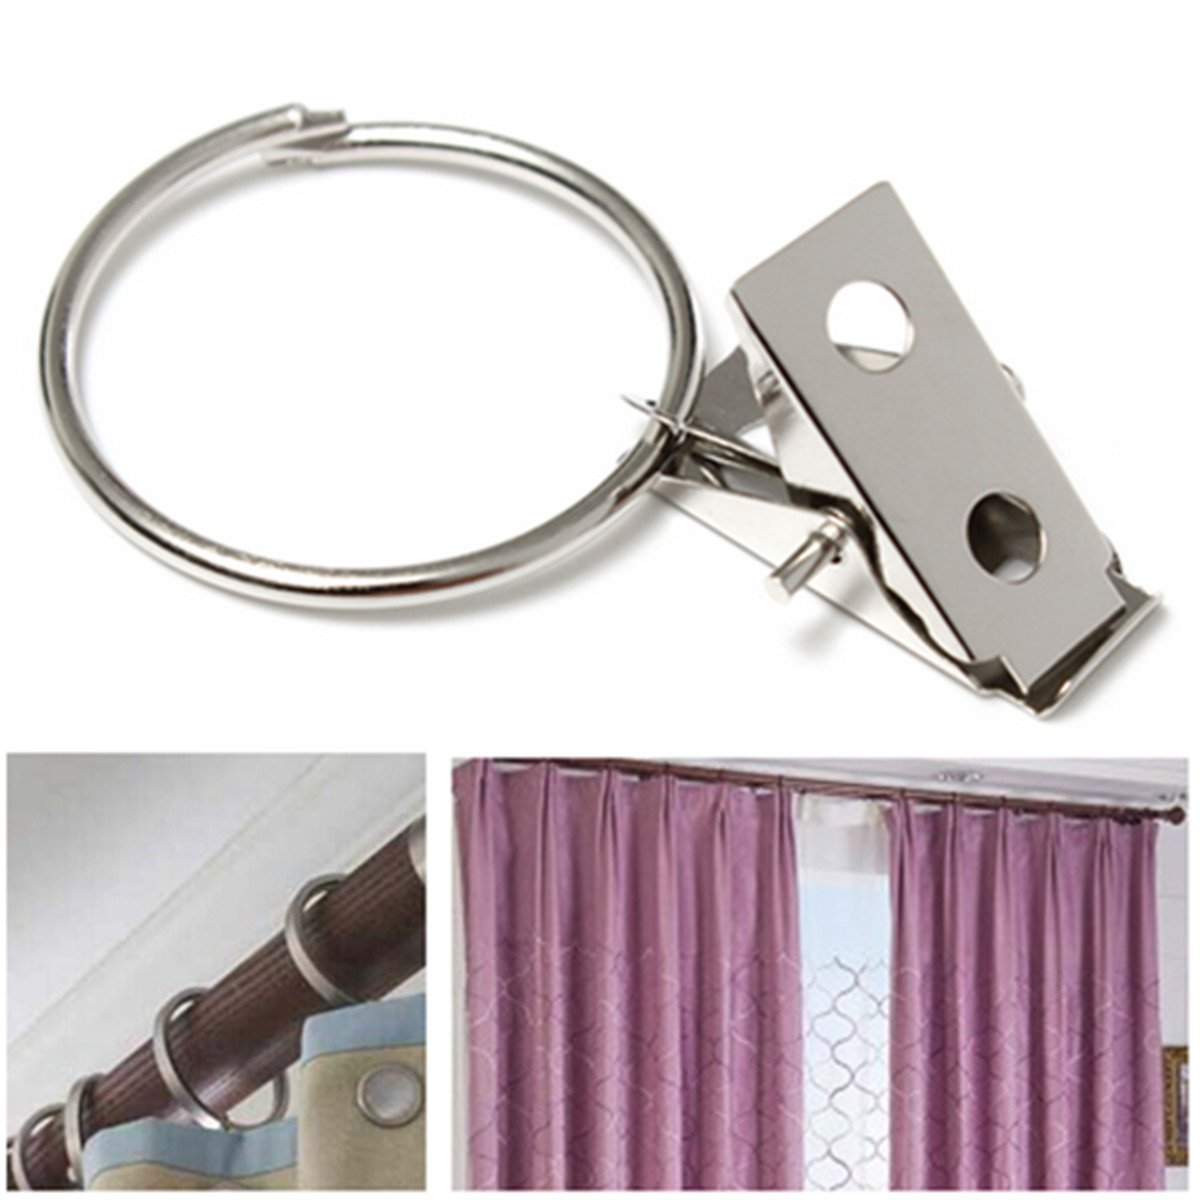 10pcs Metal Hooks Window Curtain Rod Clip Drapery Clips Rings Dw Ebay